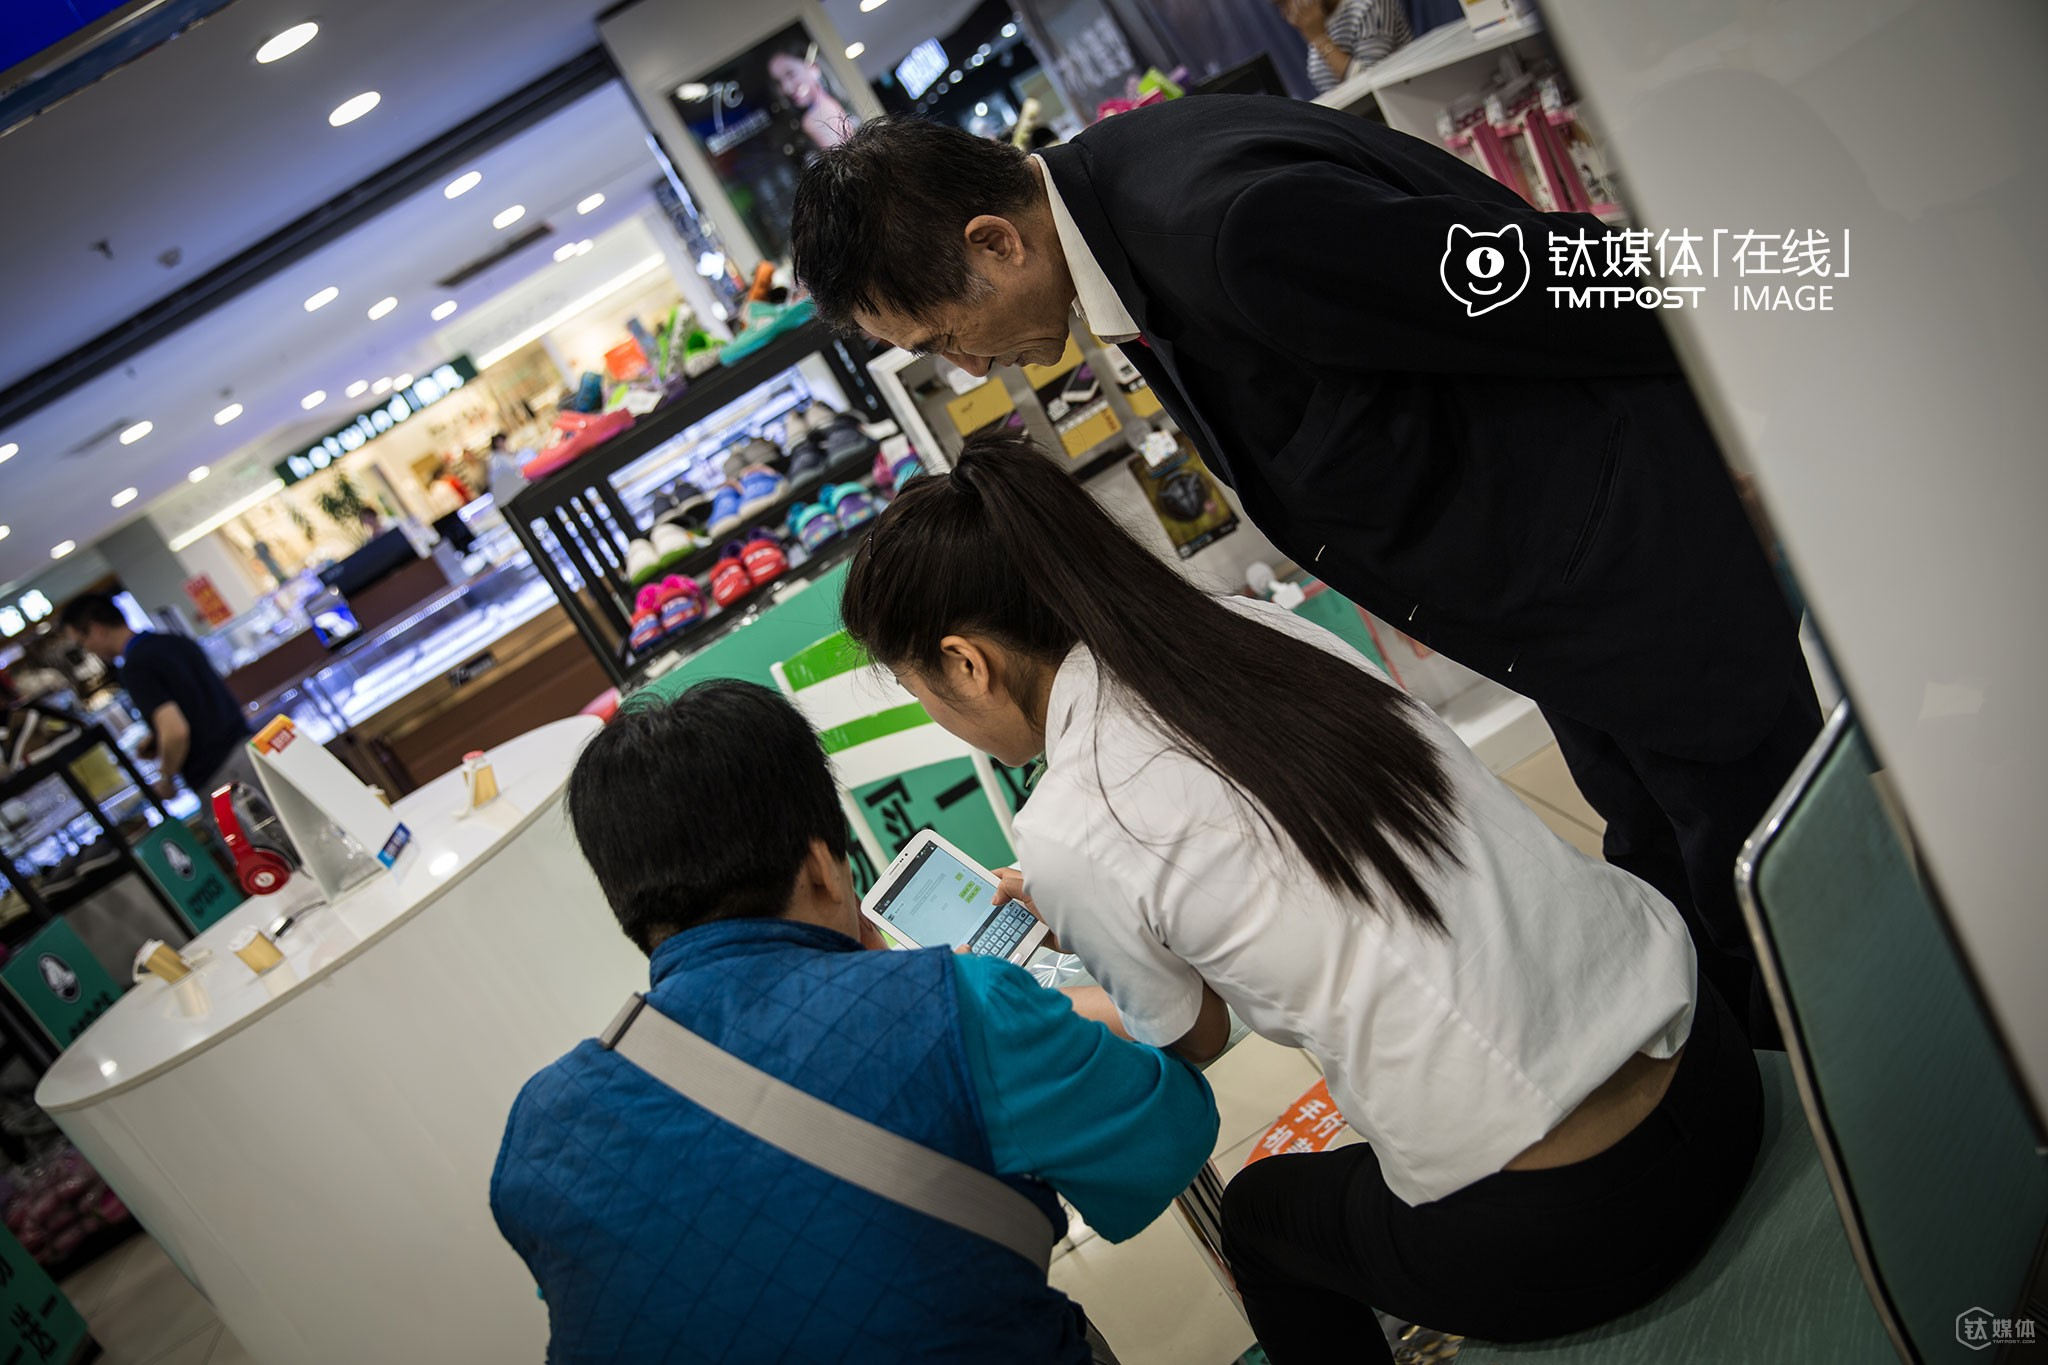 It was 0:35 PM. Two aged customers went into the smartphone store for help. They clicked the ad when playing mobile games, and don't know how to close the ad. In addition, they want the employee at the store to teach them how to use WeChat to call others and send voice messages.